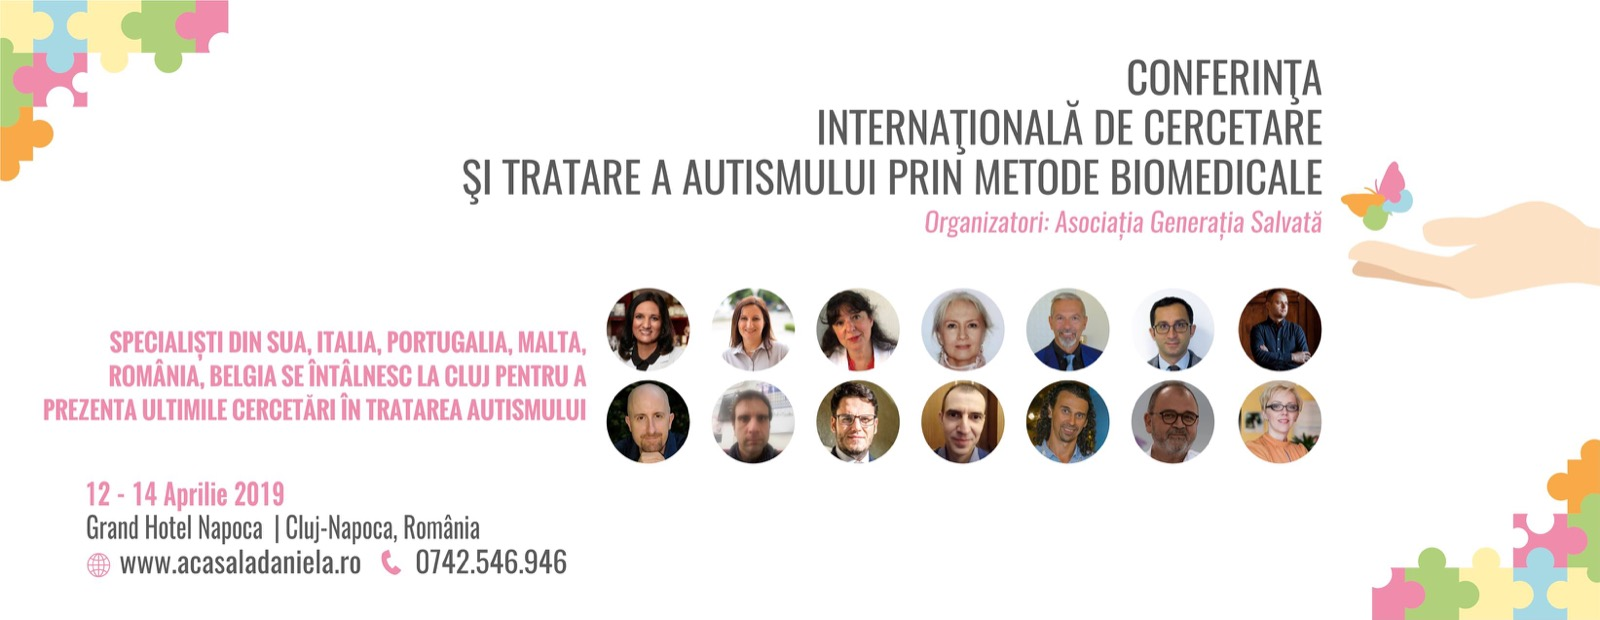 Transilvania Healing Centre, Medicina Bioelectromagnetica  International Conference on Research and Treatment of Autism through Biomedical Methods 2019 WhatsApp Image 2019 04 15 at 10